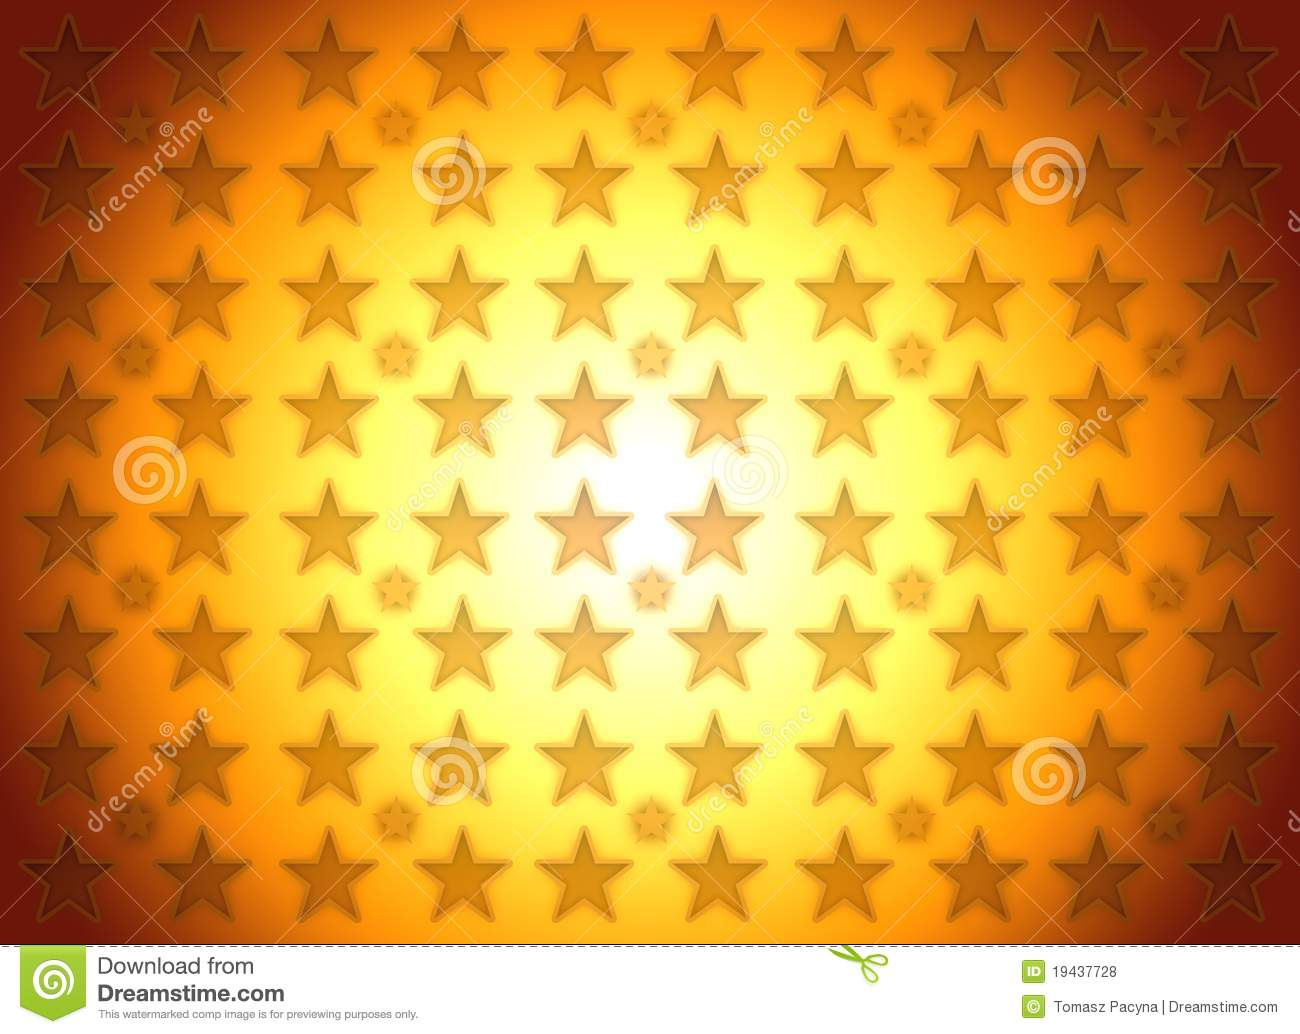 gold stars winner background illustration royalty free